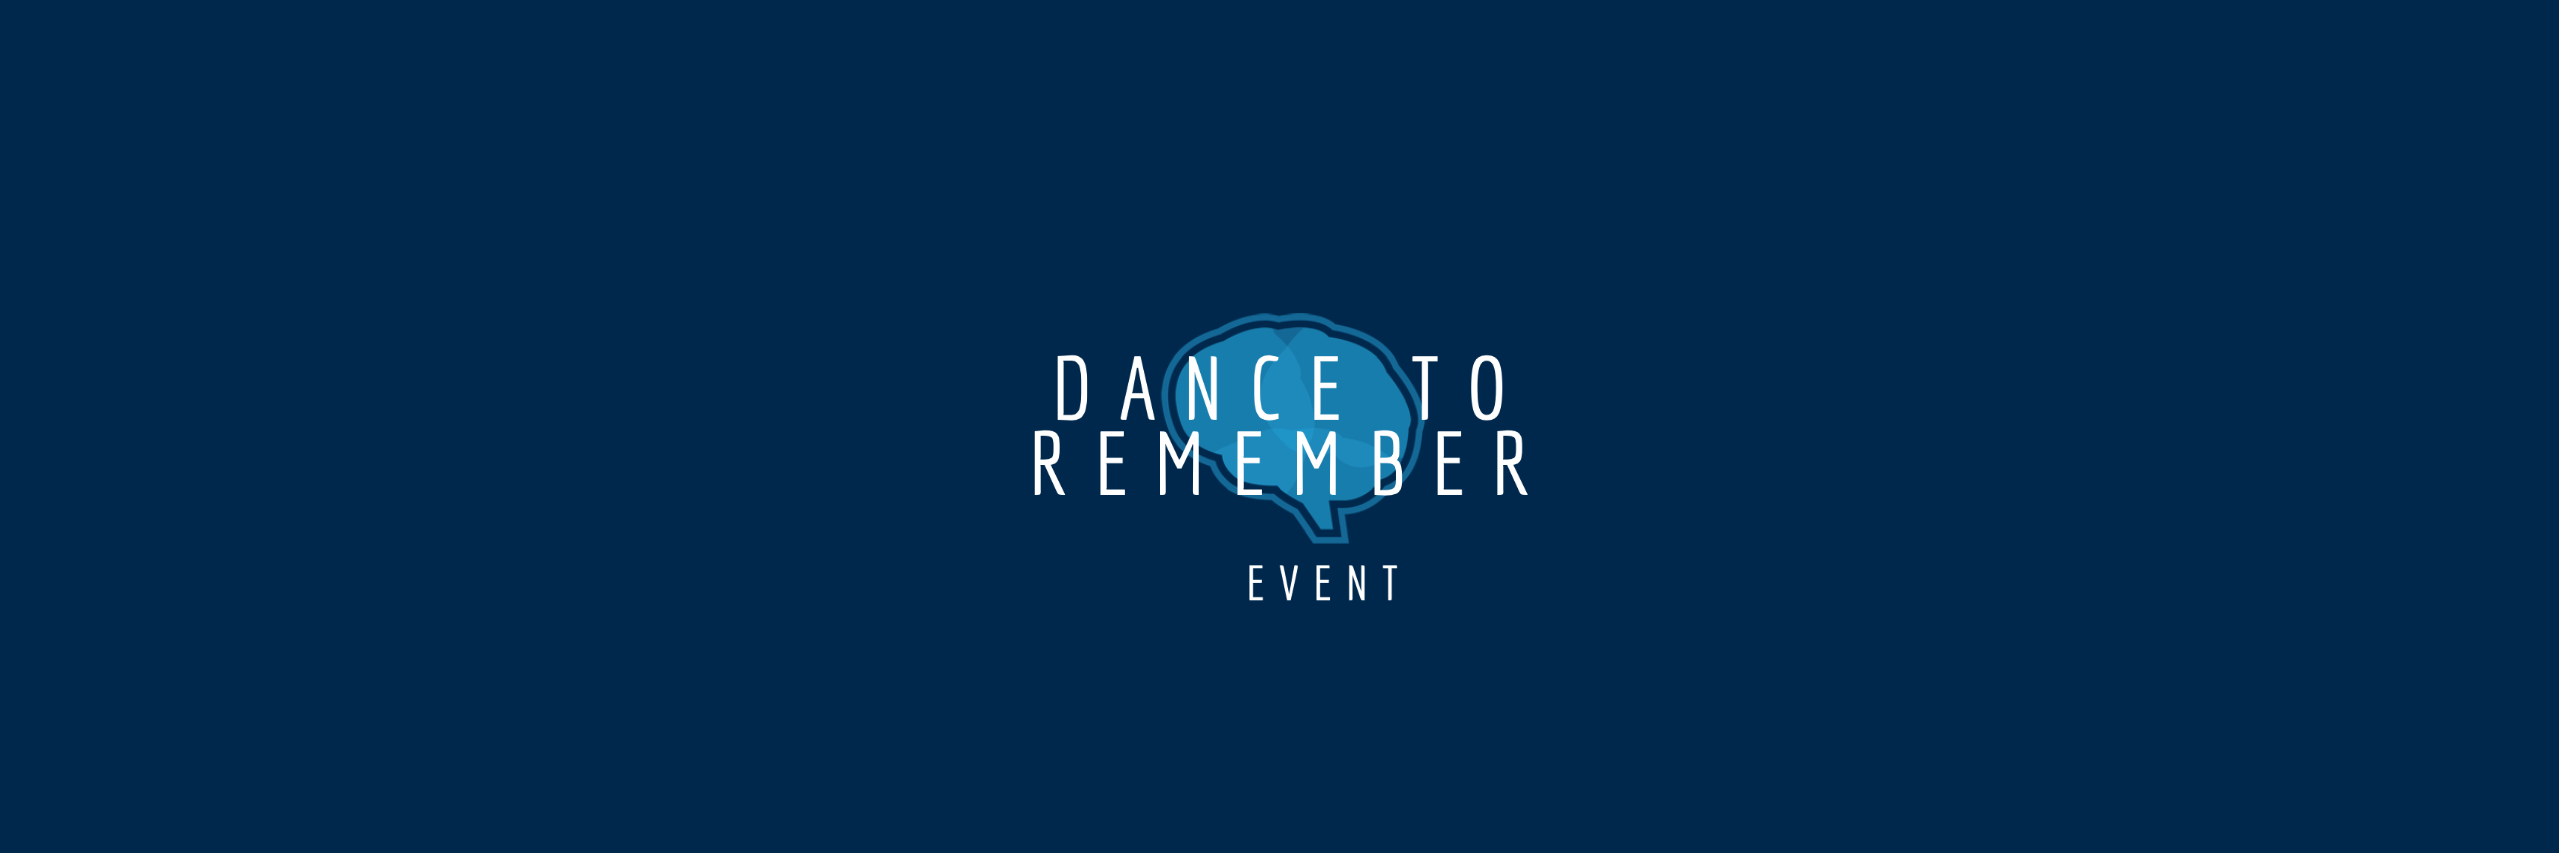 Dance to Remember Event